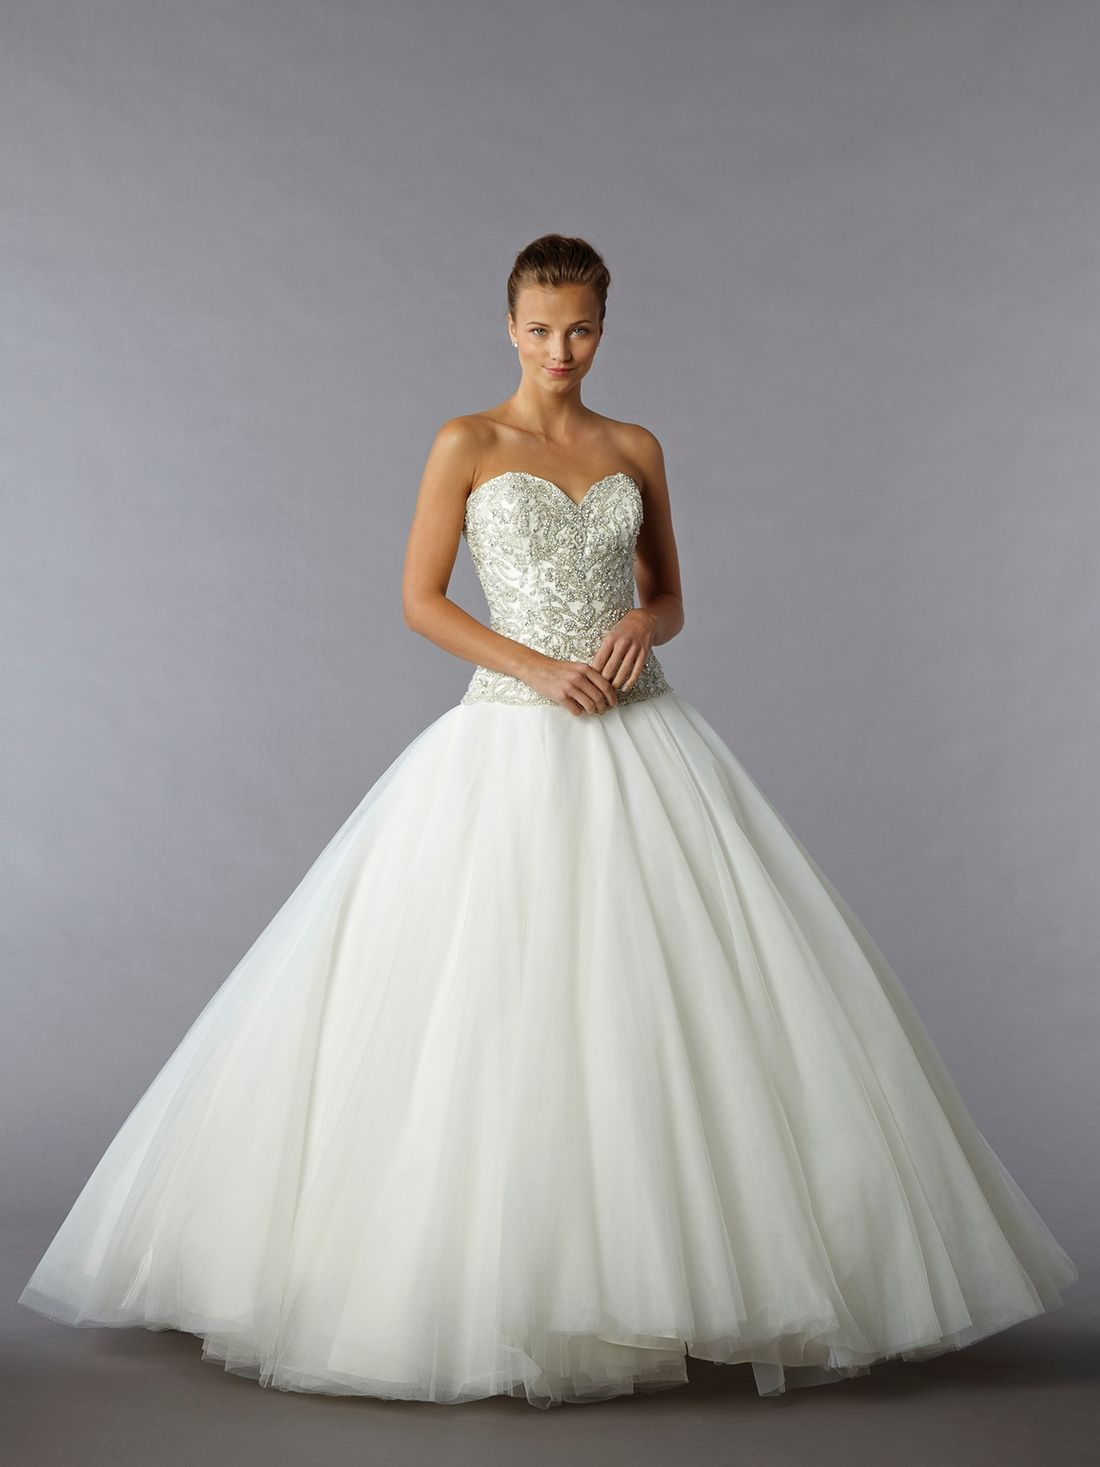 Bridal Gowns Danielle Caprese Princess Ball Gown Wedding Dress With Sweetheart Neckline And Dropped Waist Waistline